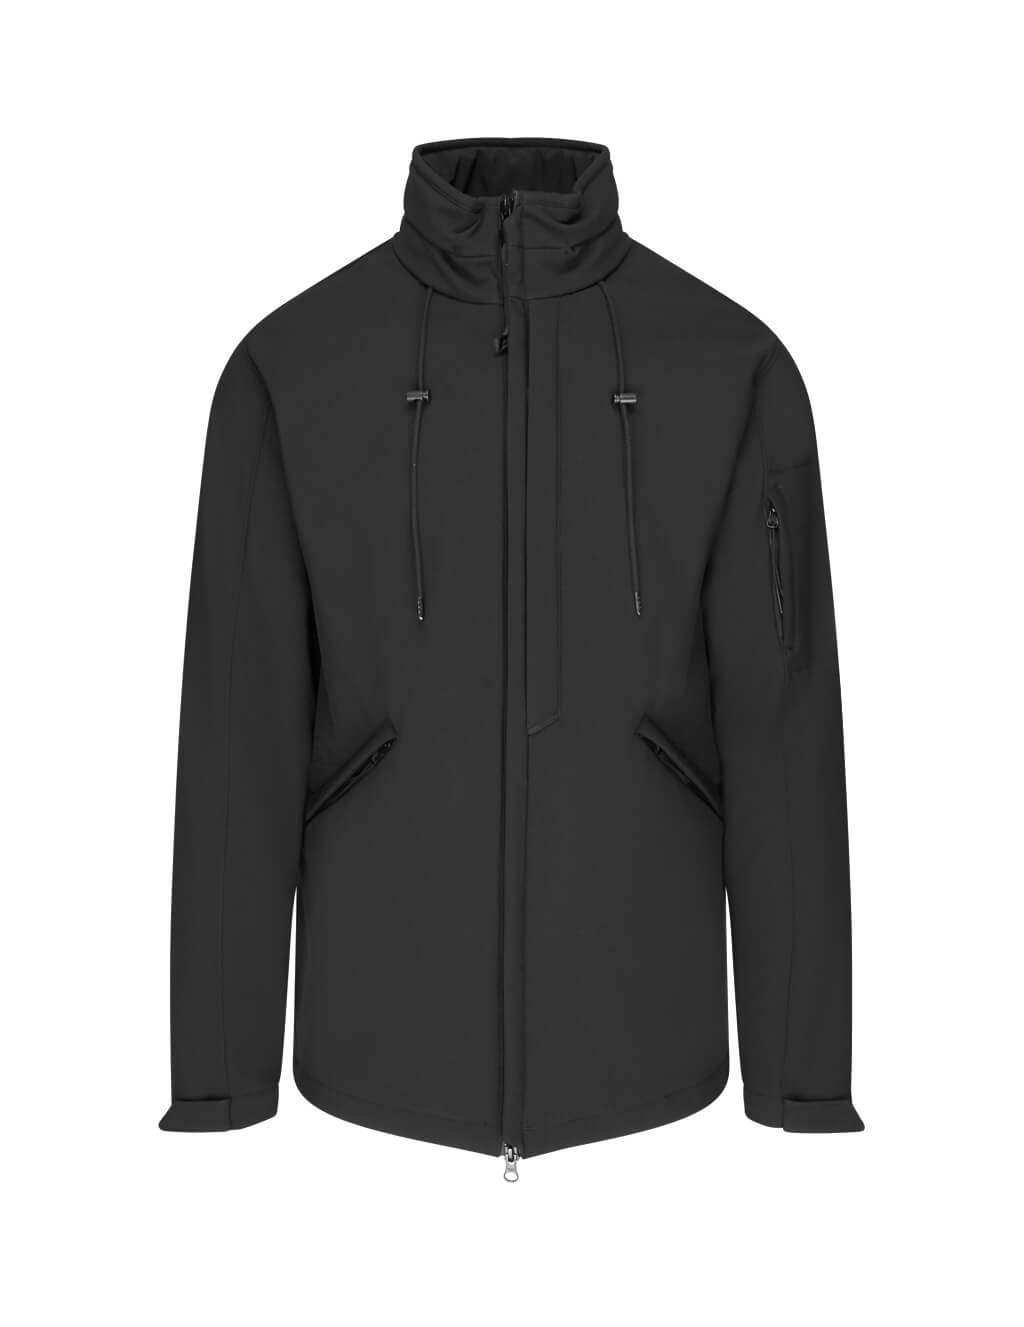 C.P. Company Men's Black Tech Fabric Lens Windbreaker Jacket 07Cmow016A005242A999